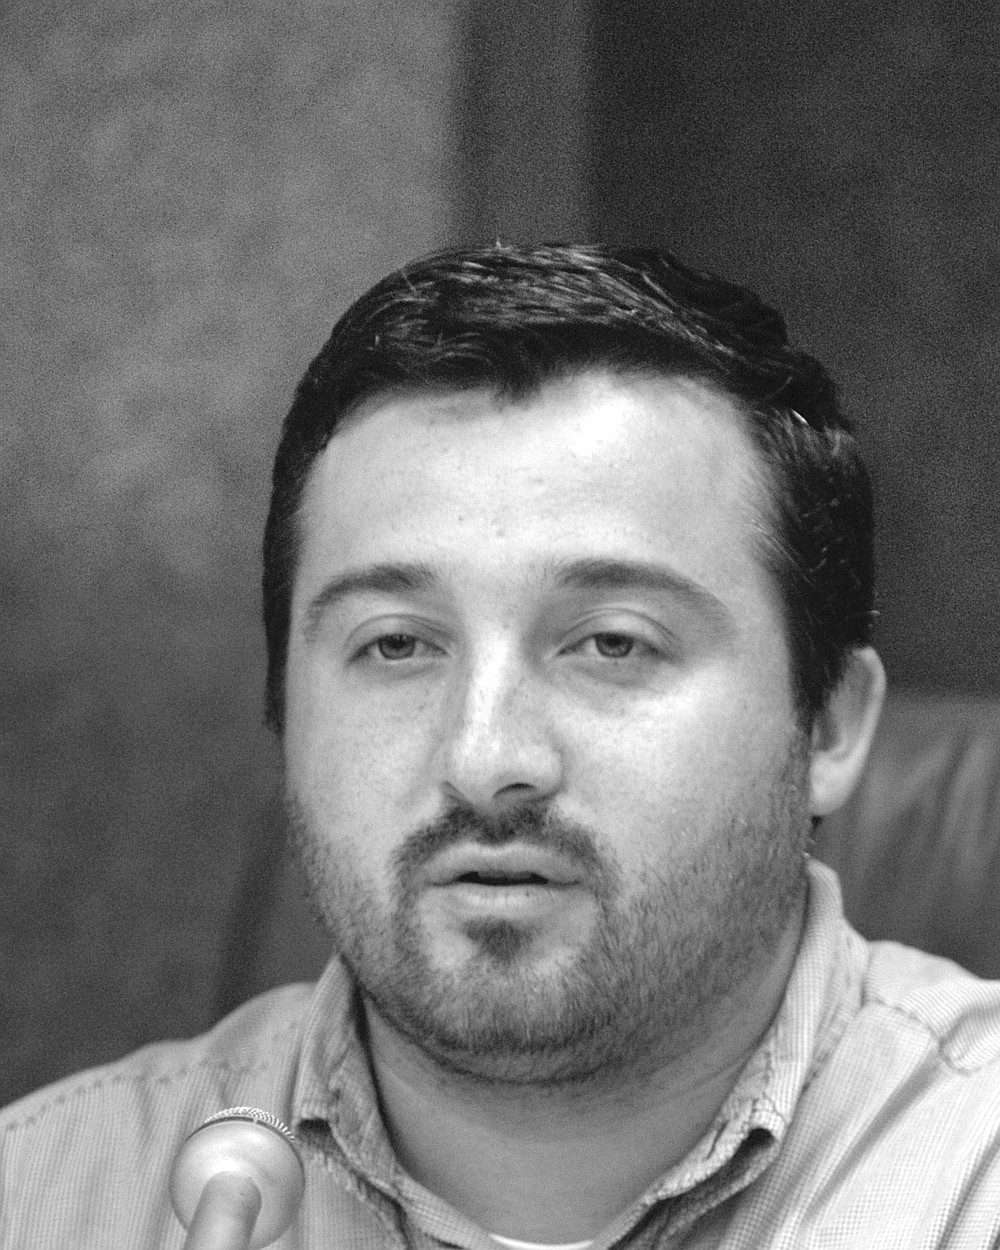 Nick Inzunza was sworn in as mayor of National City on December 5, 2002.